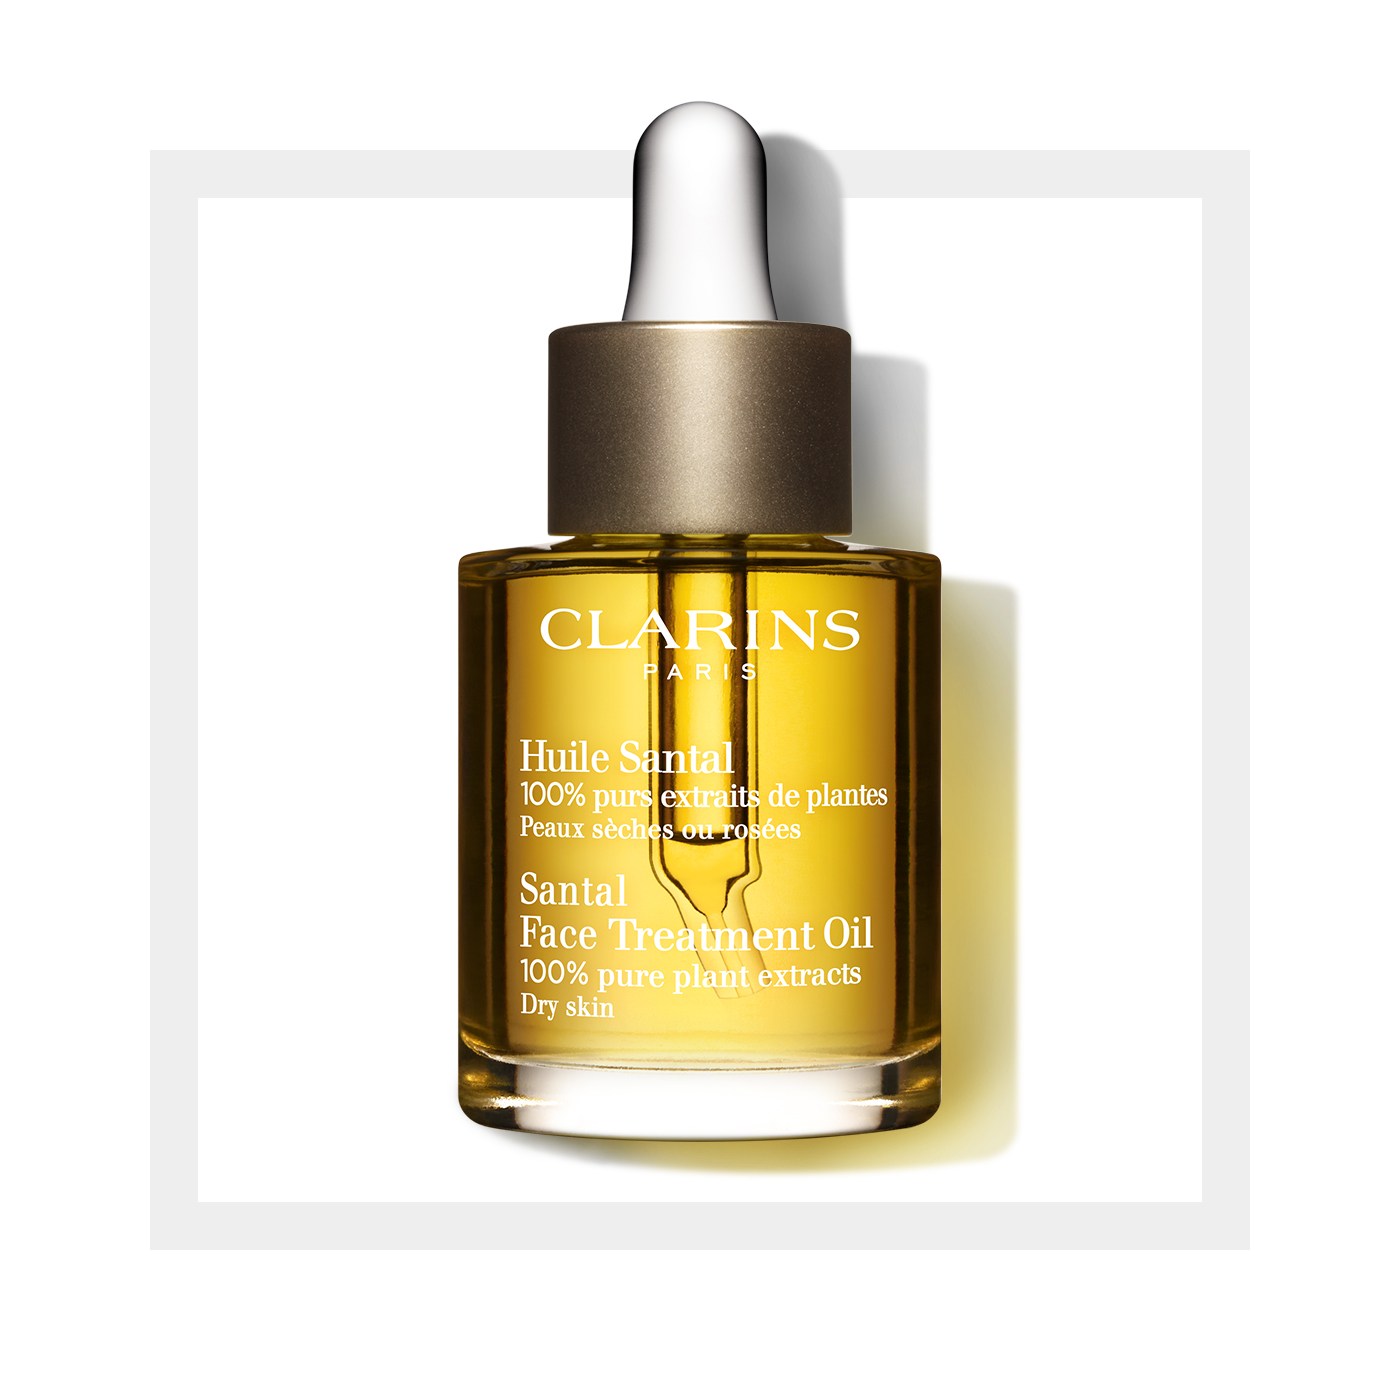 Clarins Santal Face Treatment Oil, 1 Oz MOISTRZR,UNDER AGE, 1 FZ By Kiss My Face